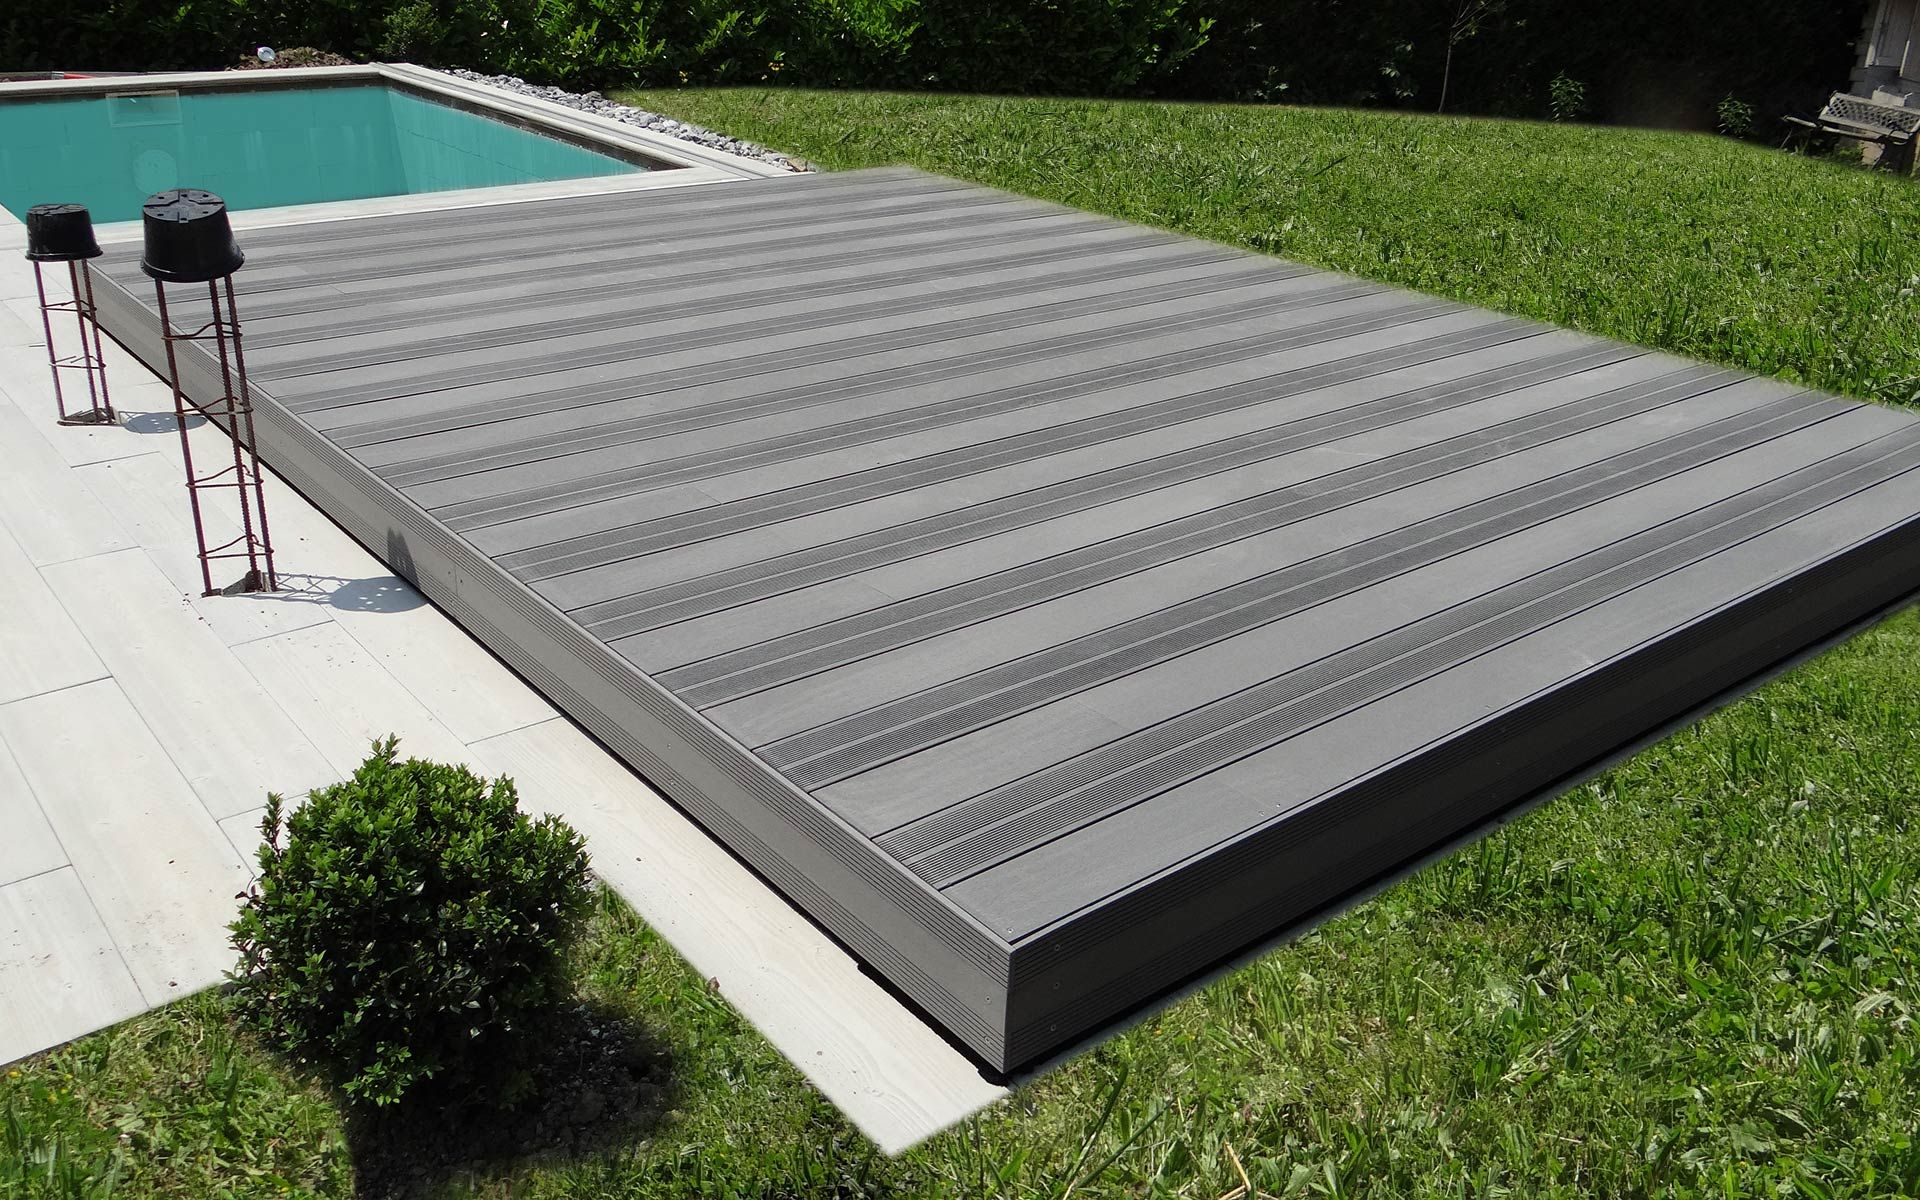 Plancher coulissant terrasse mobile piscine plancher for Transformer une piscine